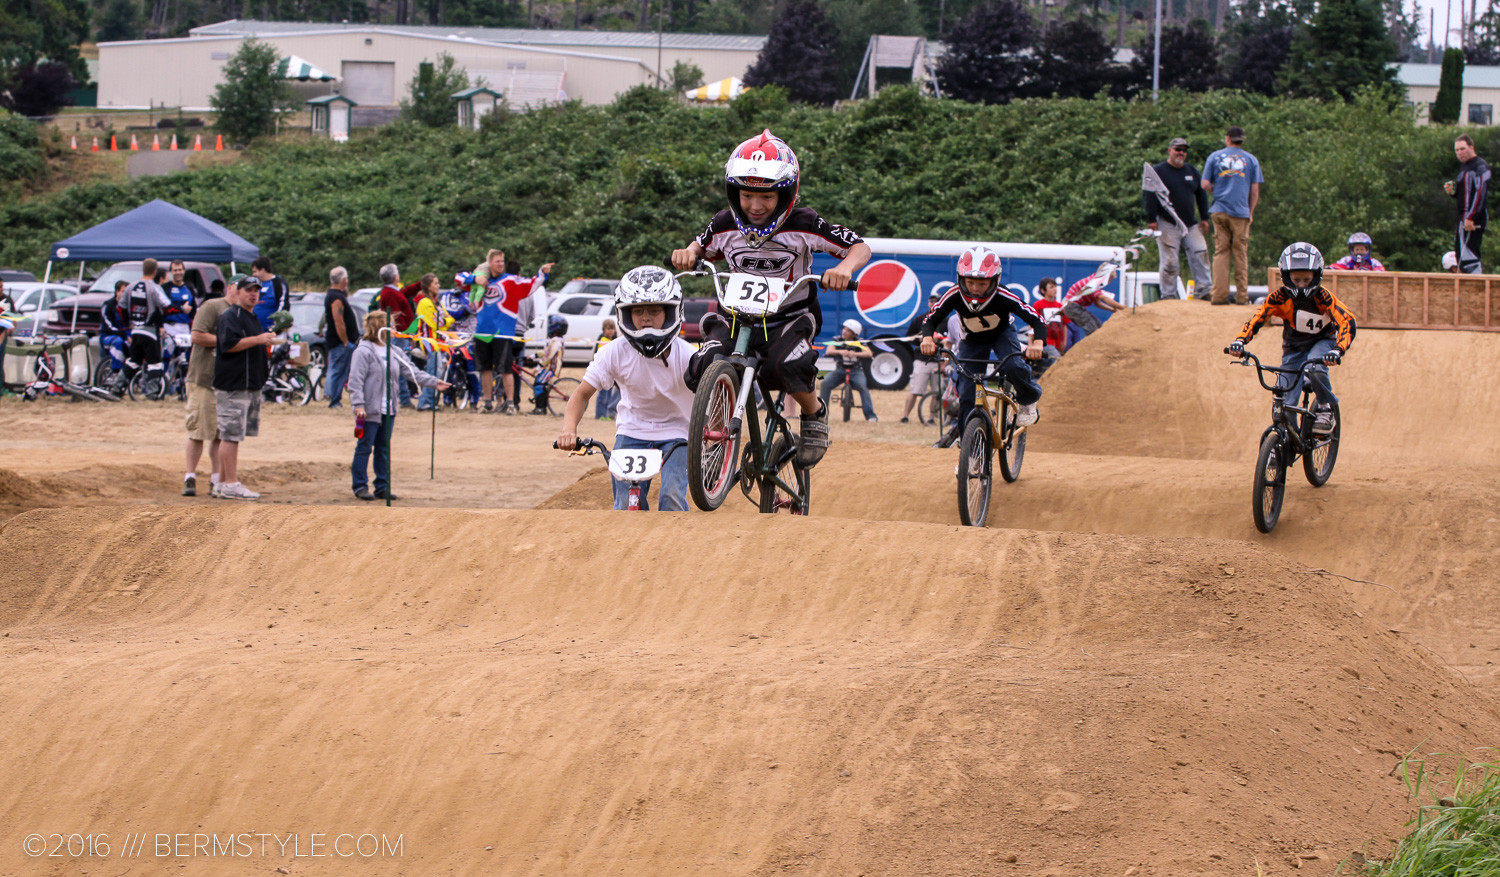 Young riders on a BMX track.